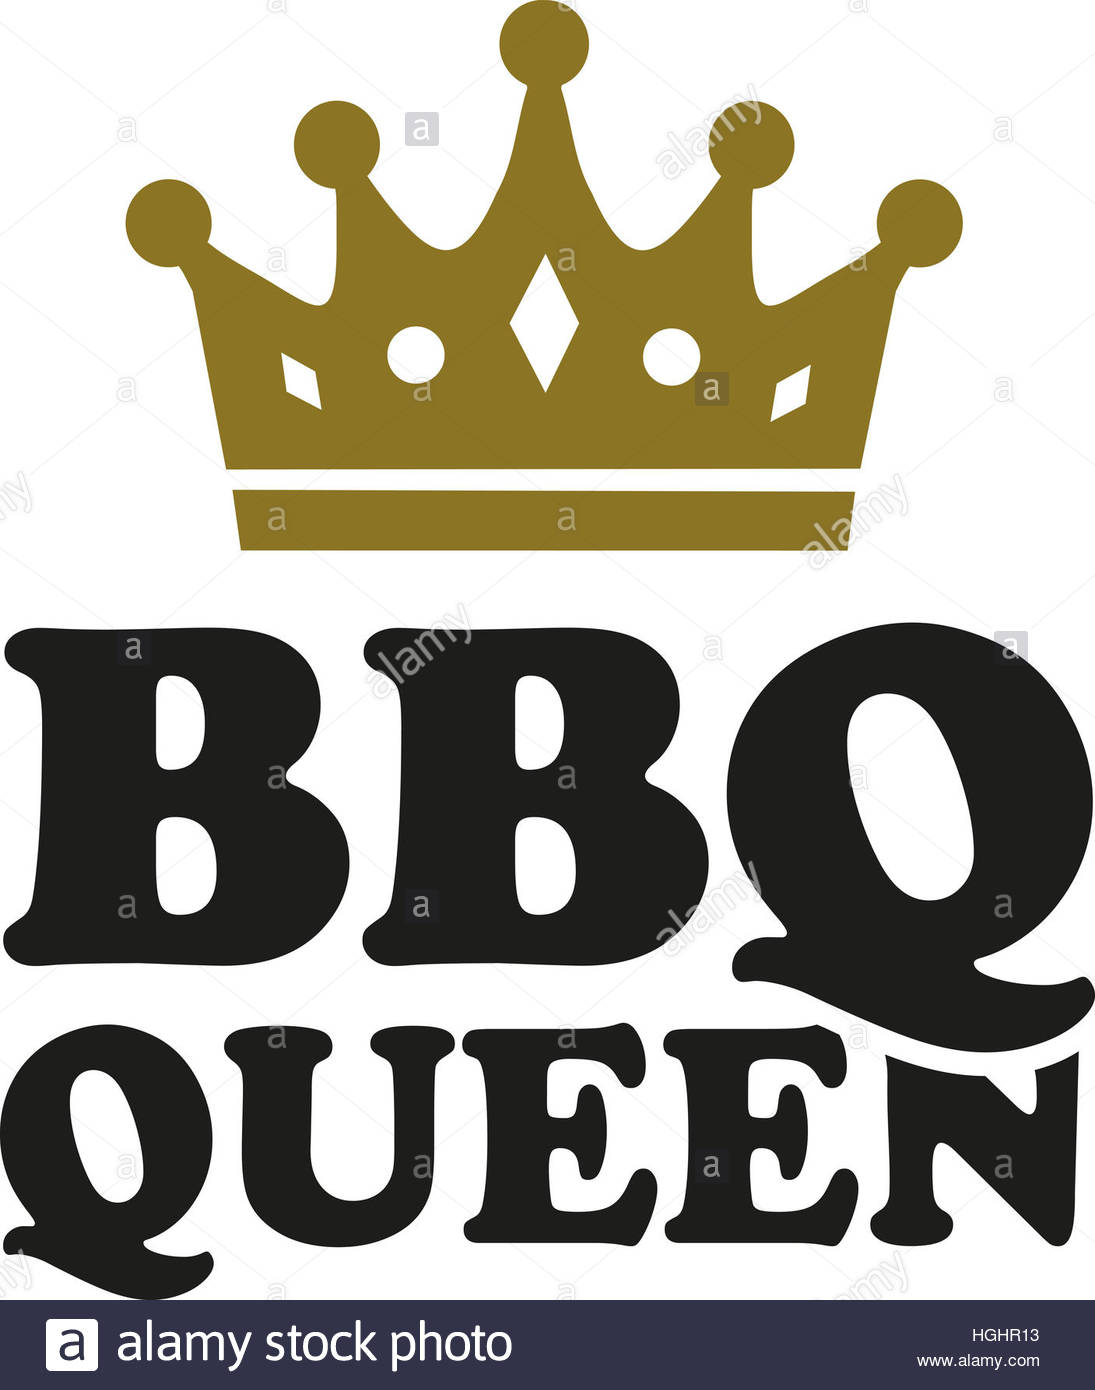 1095x1390 Bbq Queen With Crown Stock Photo, Royalty Free Image 130698319